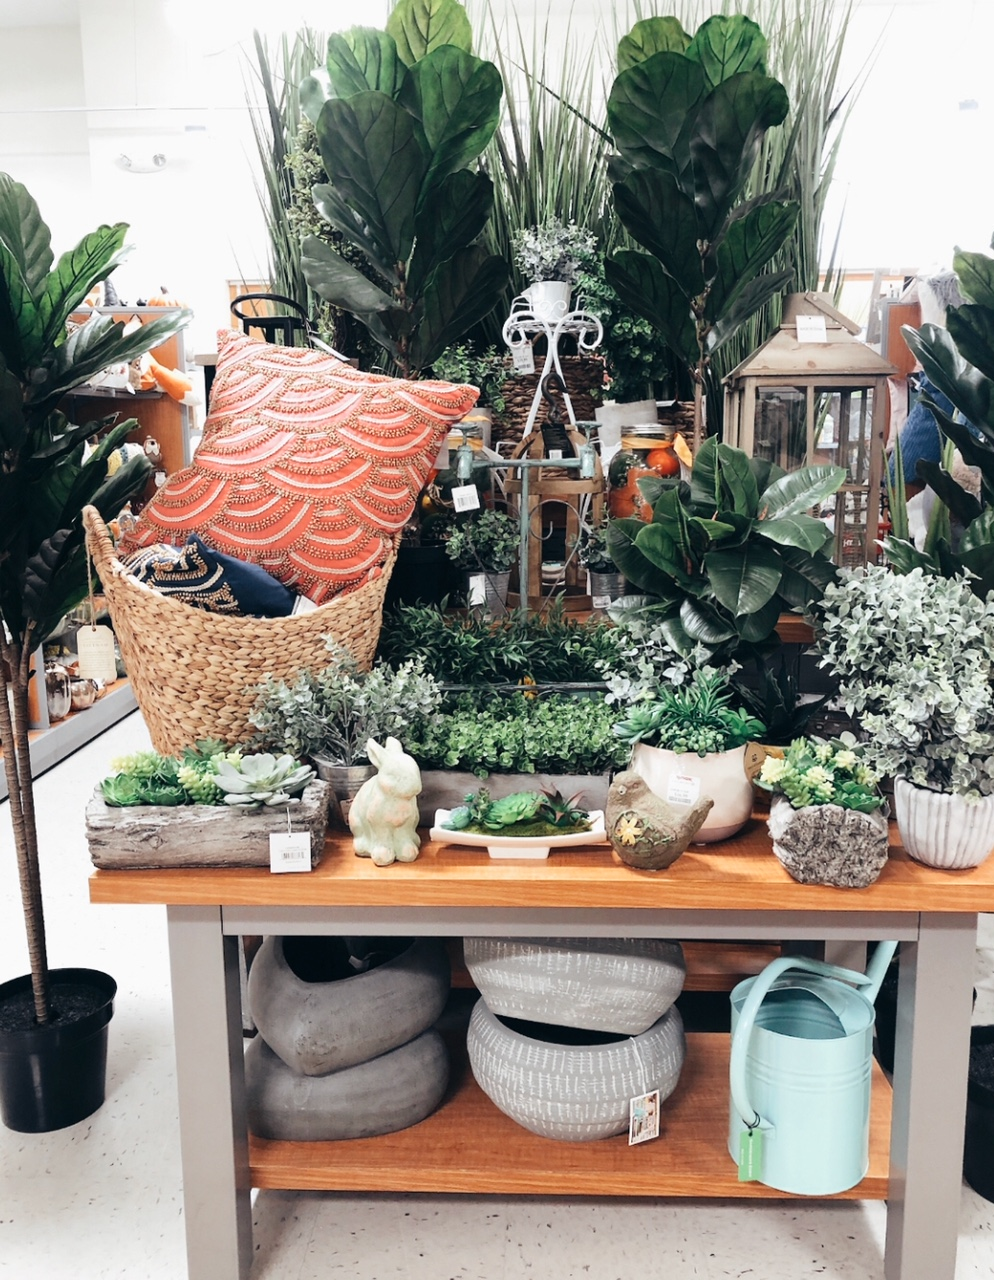 How cute is this home display at TJ MAXX?